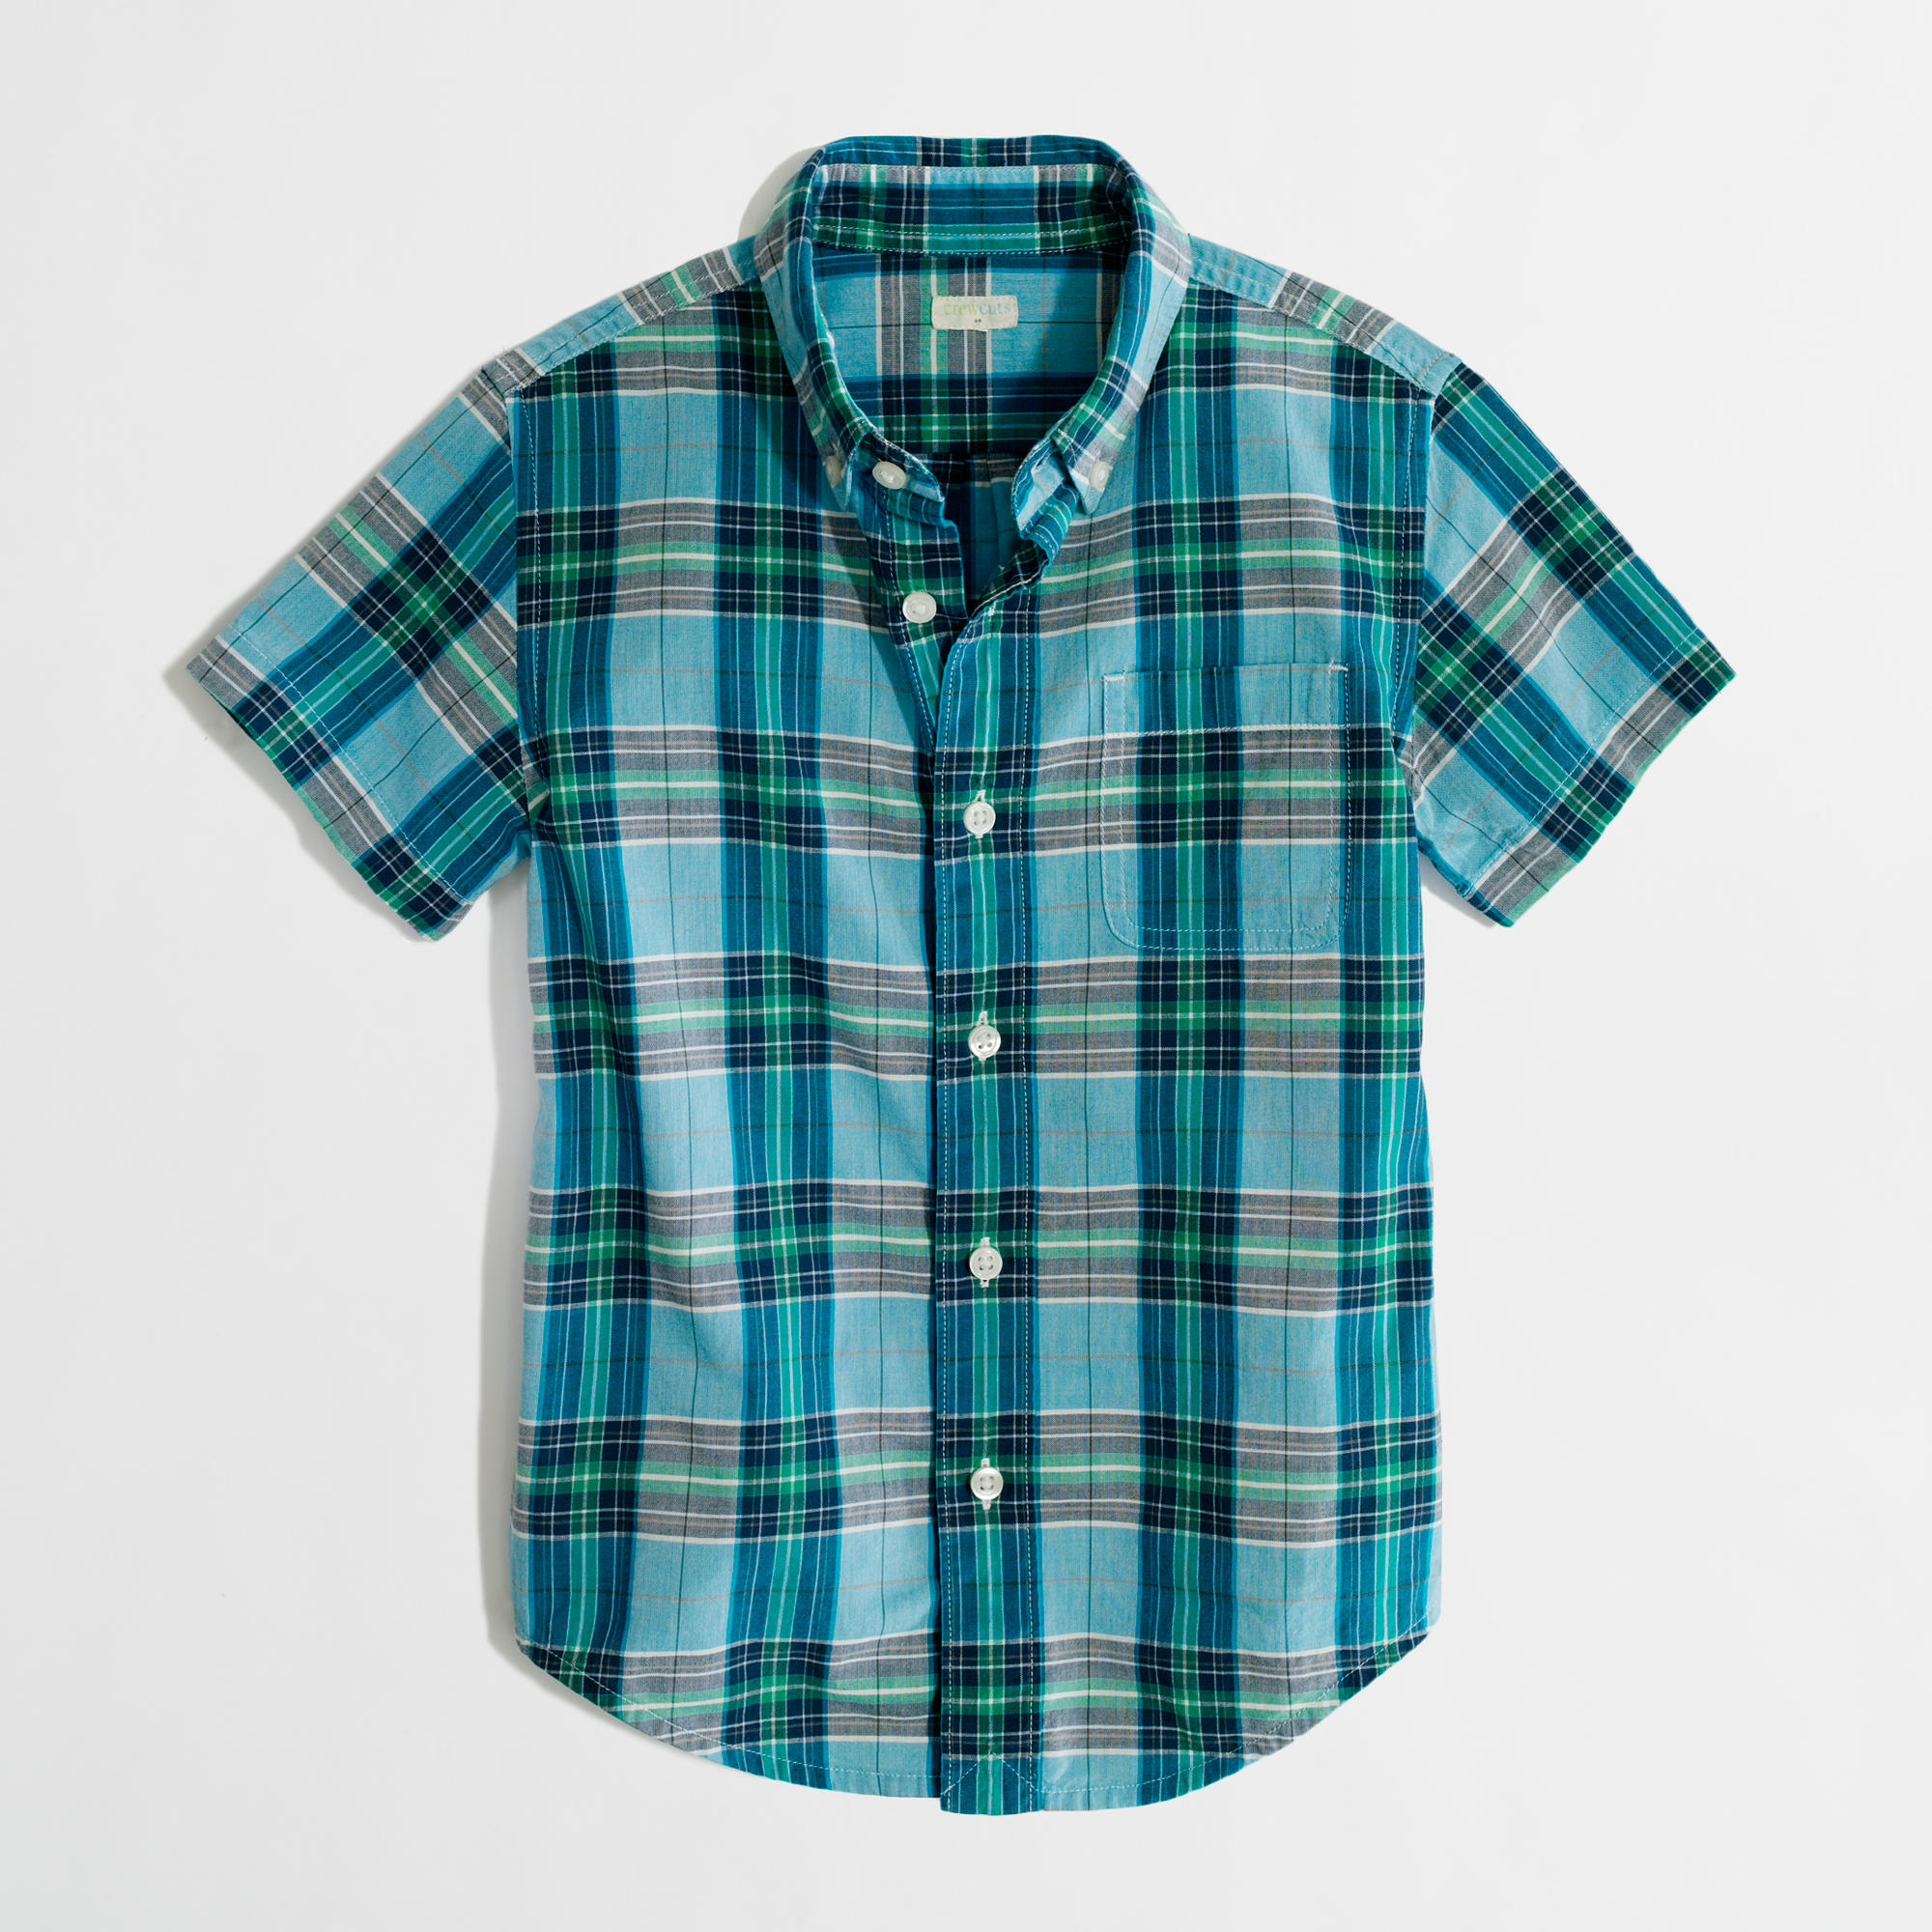 Factory Boys 39 Short Sleeve Washed Button Down Shirt In